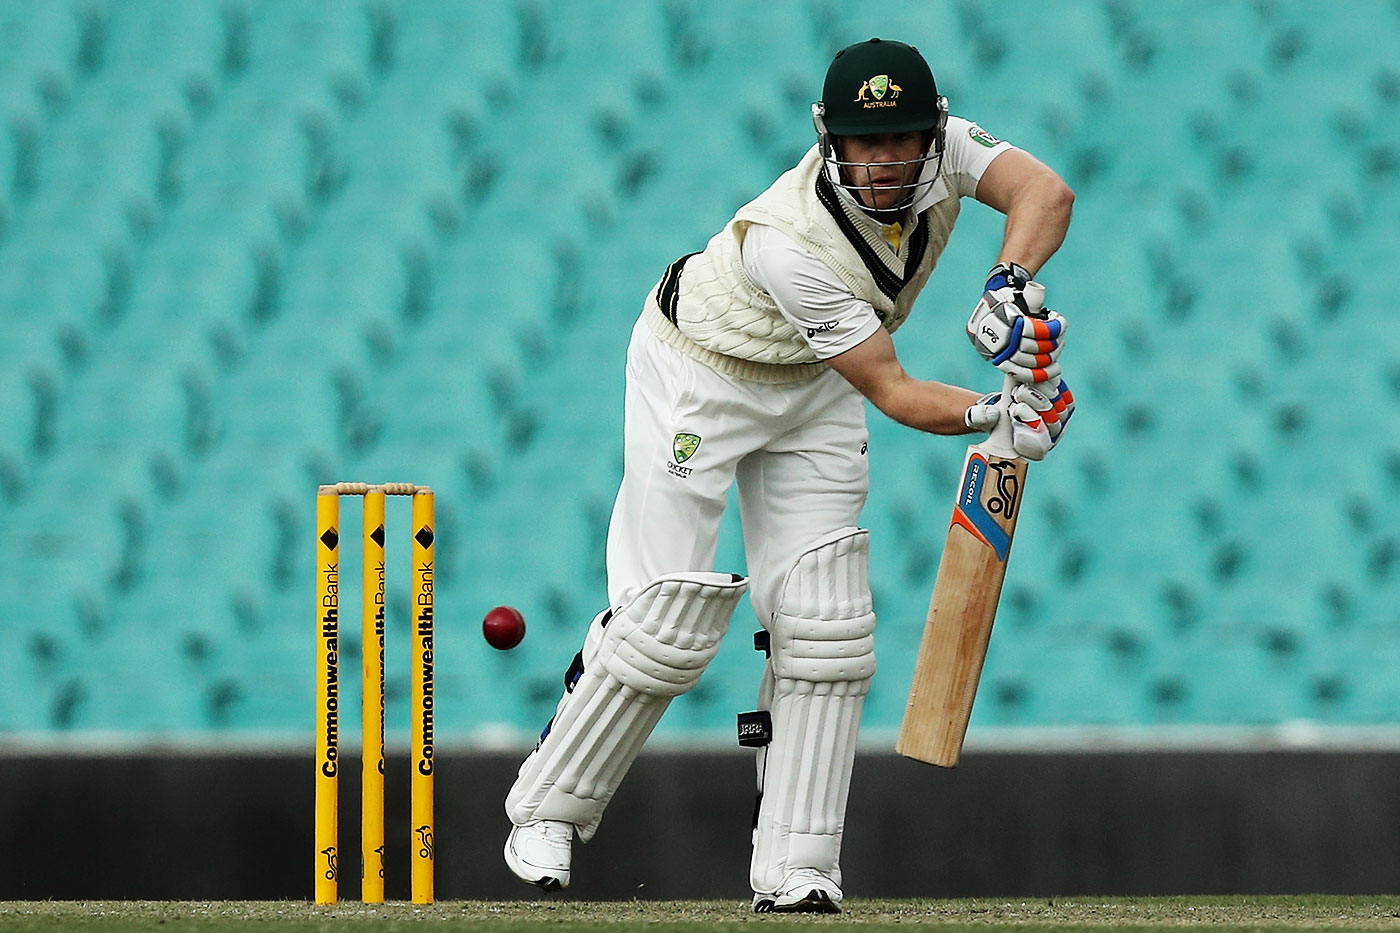 Batting for Australia A in 2012, in a game where he made 60. Note the bottom-handed grip and extra padding around the right index finger